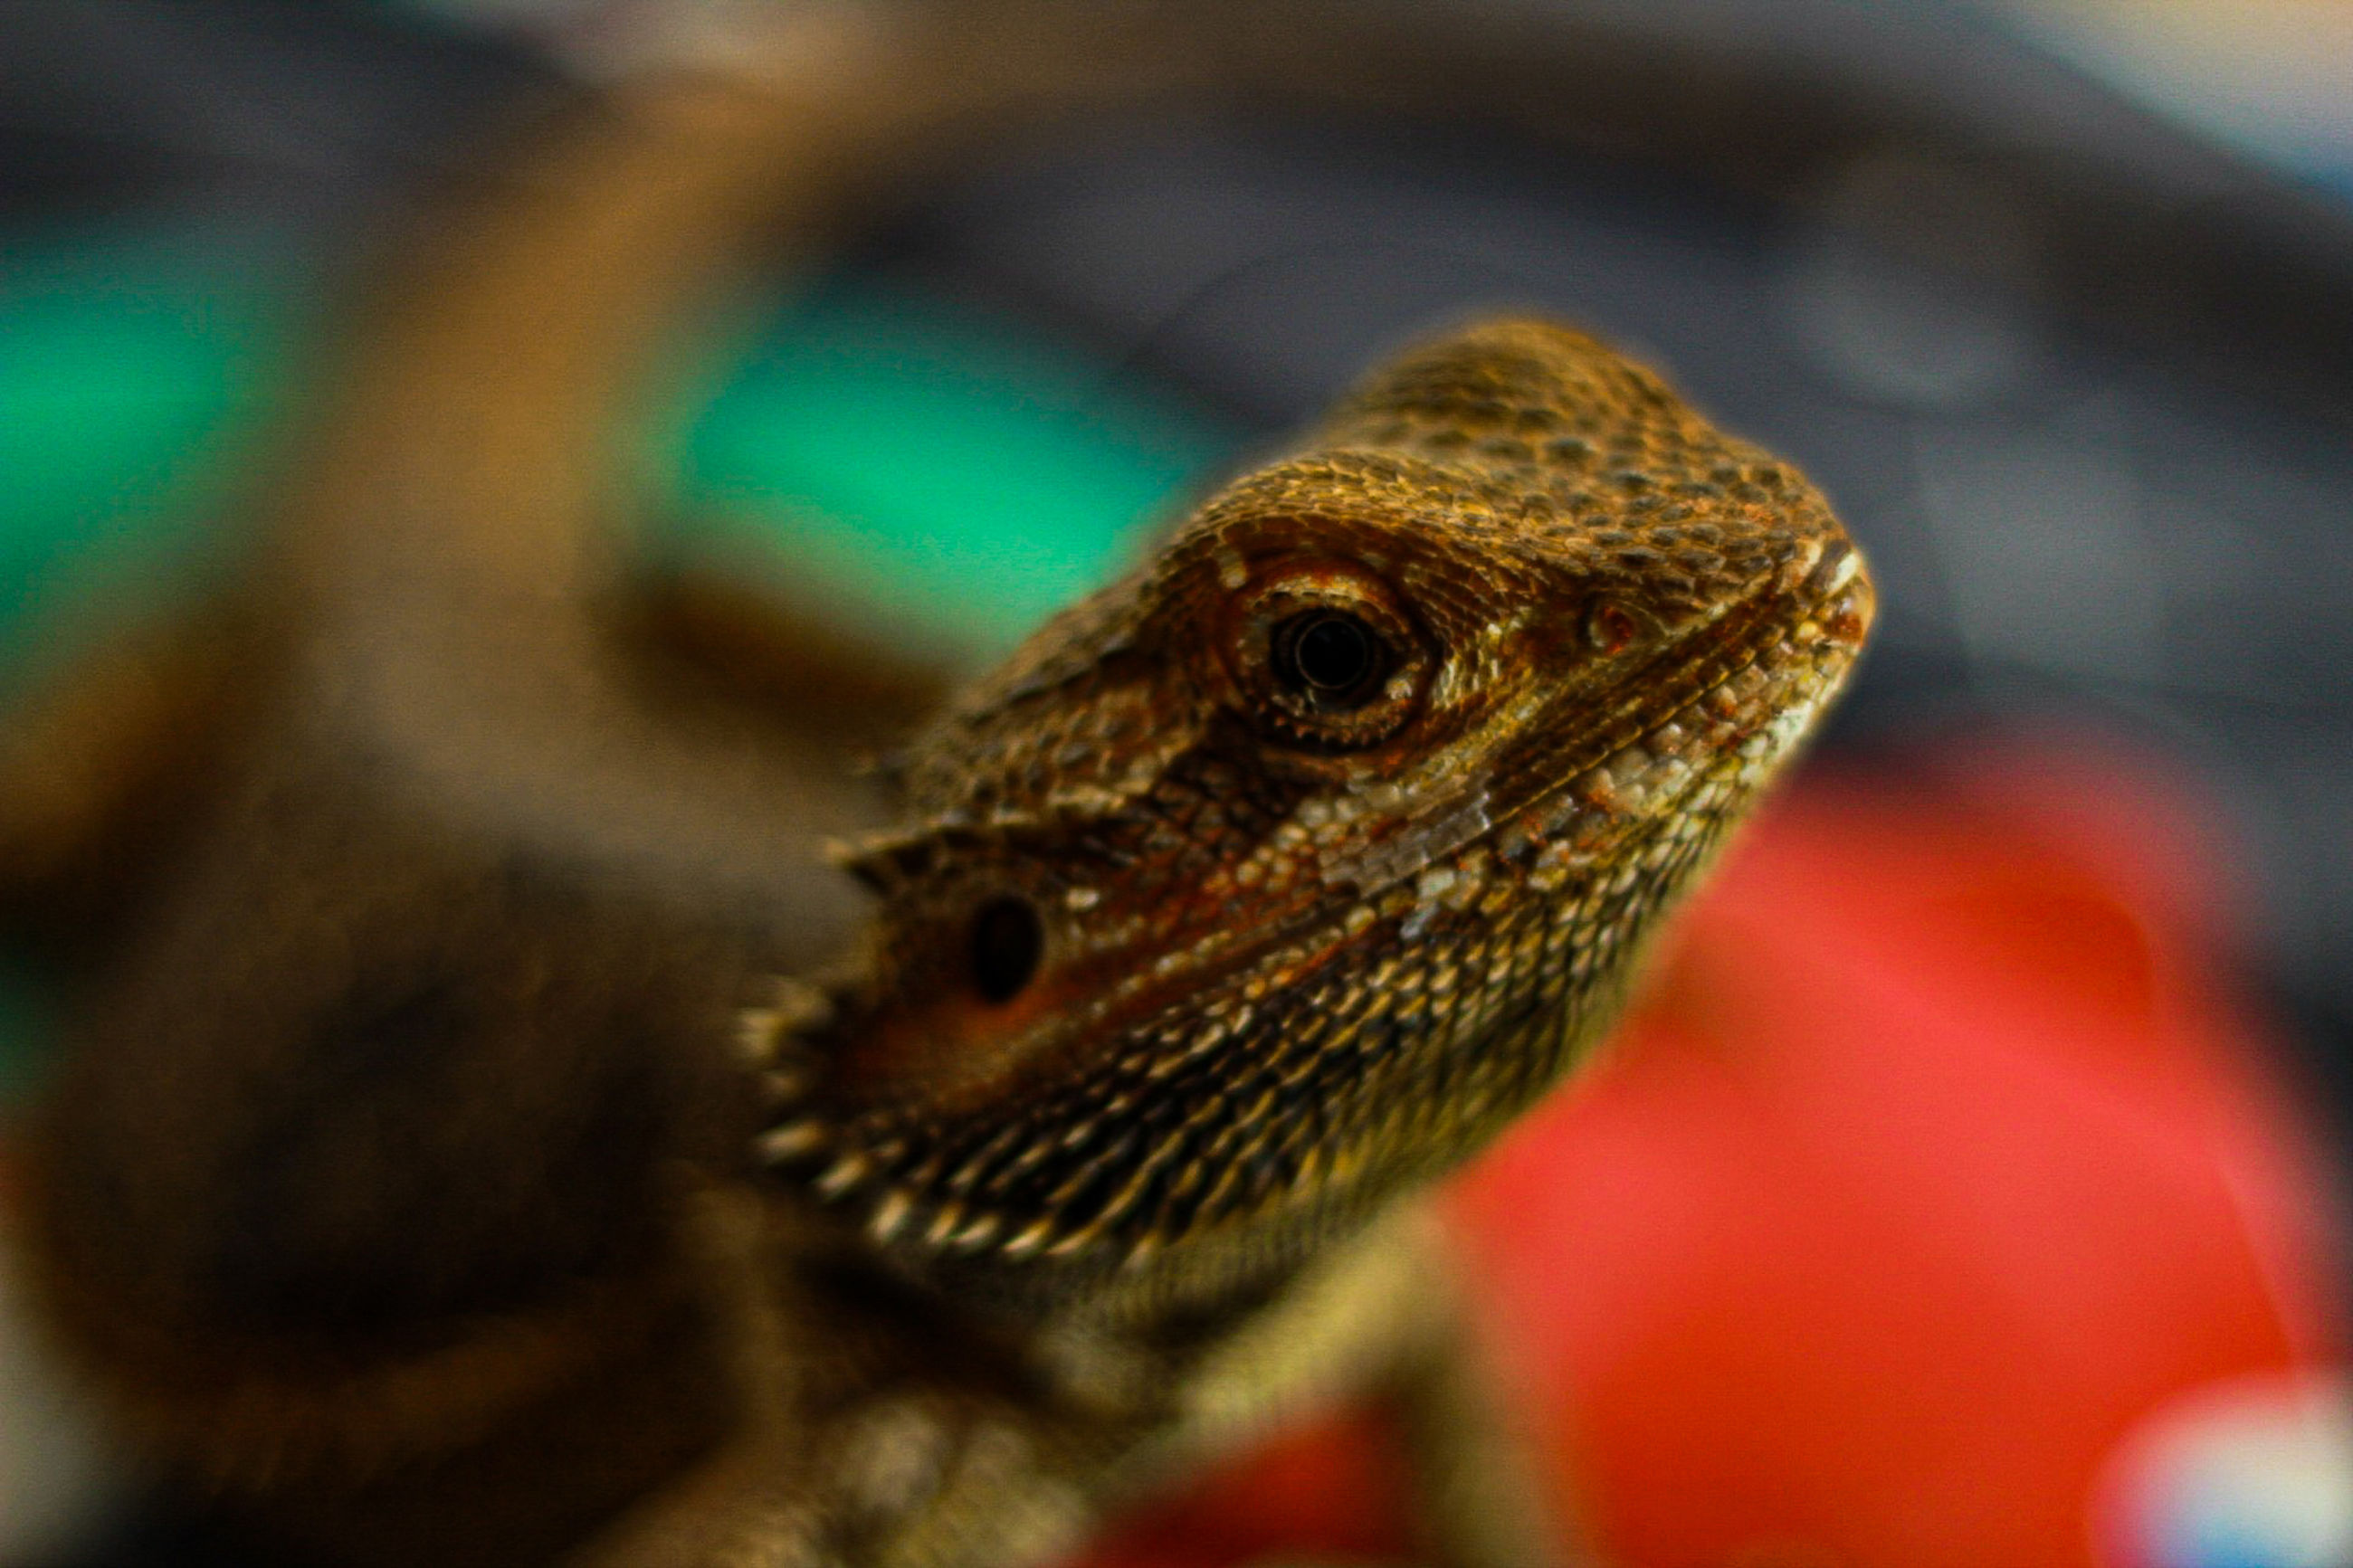 one animal, animal themes, reptile, animal, lizard, animal wildlife, close-up, animals in the wild, vertebrate, selective focus, bearded dragon, animal body part, no people, animal head, focus on foreground, nature, day, natural pattern, looking, outdoors, animal scale, animal eye